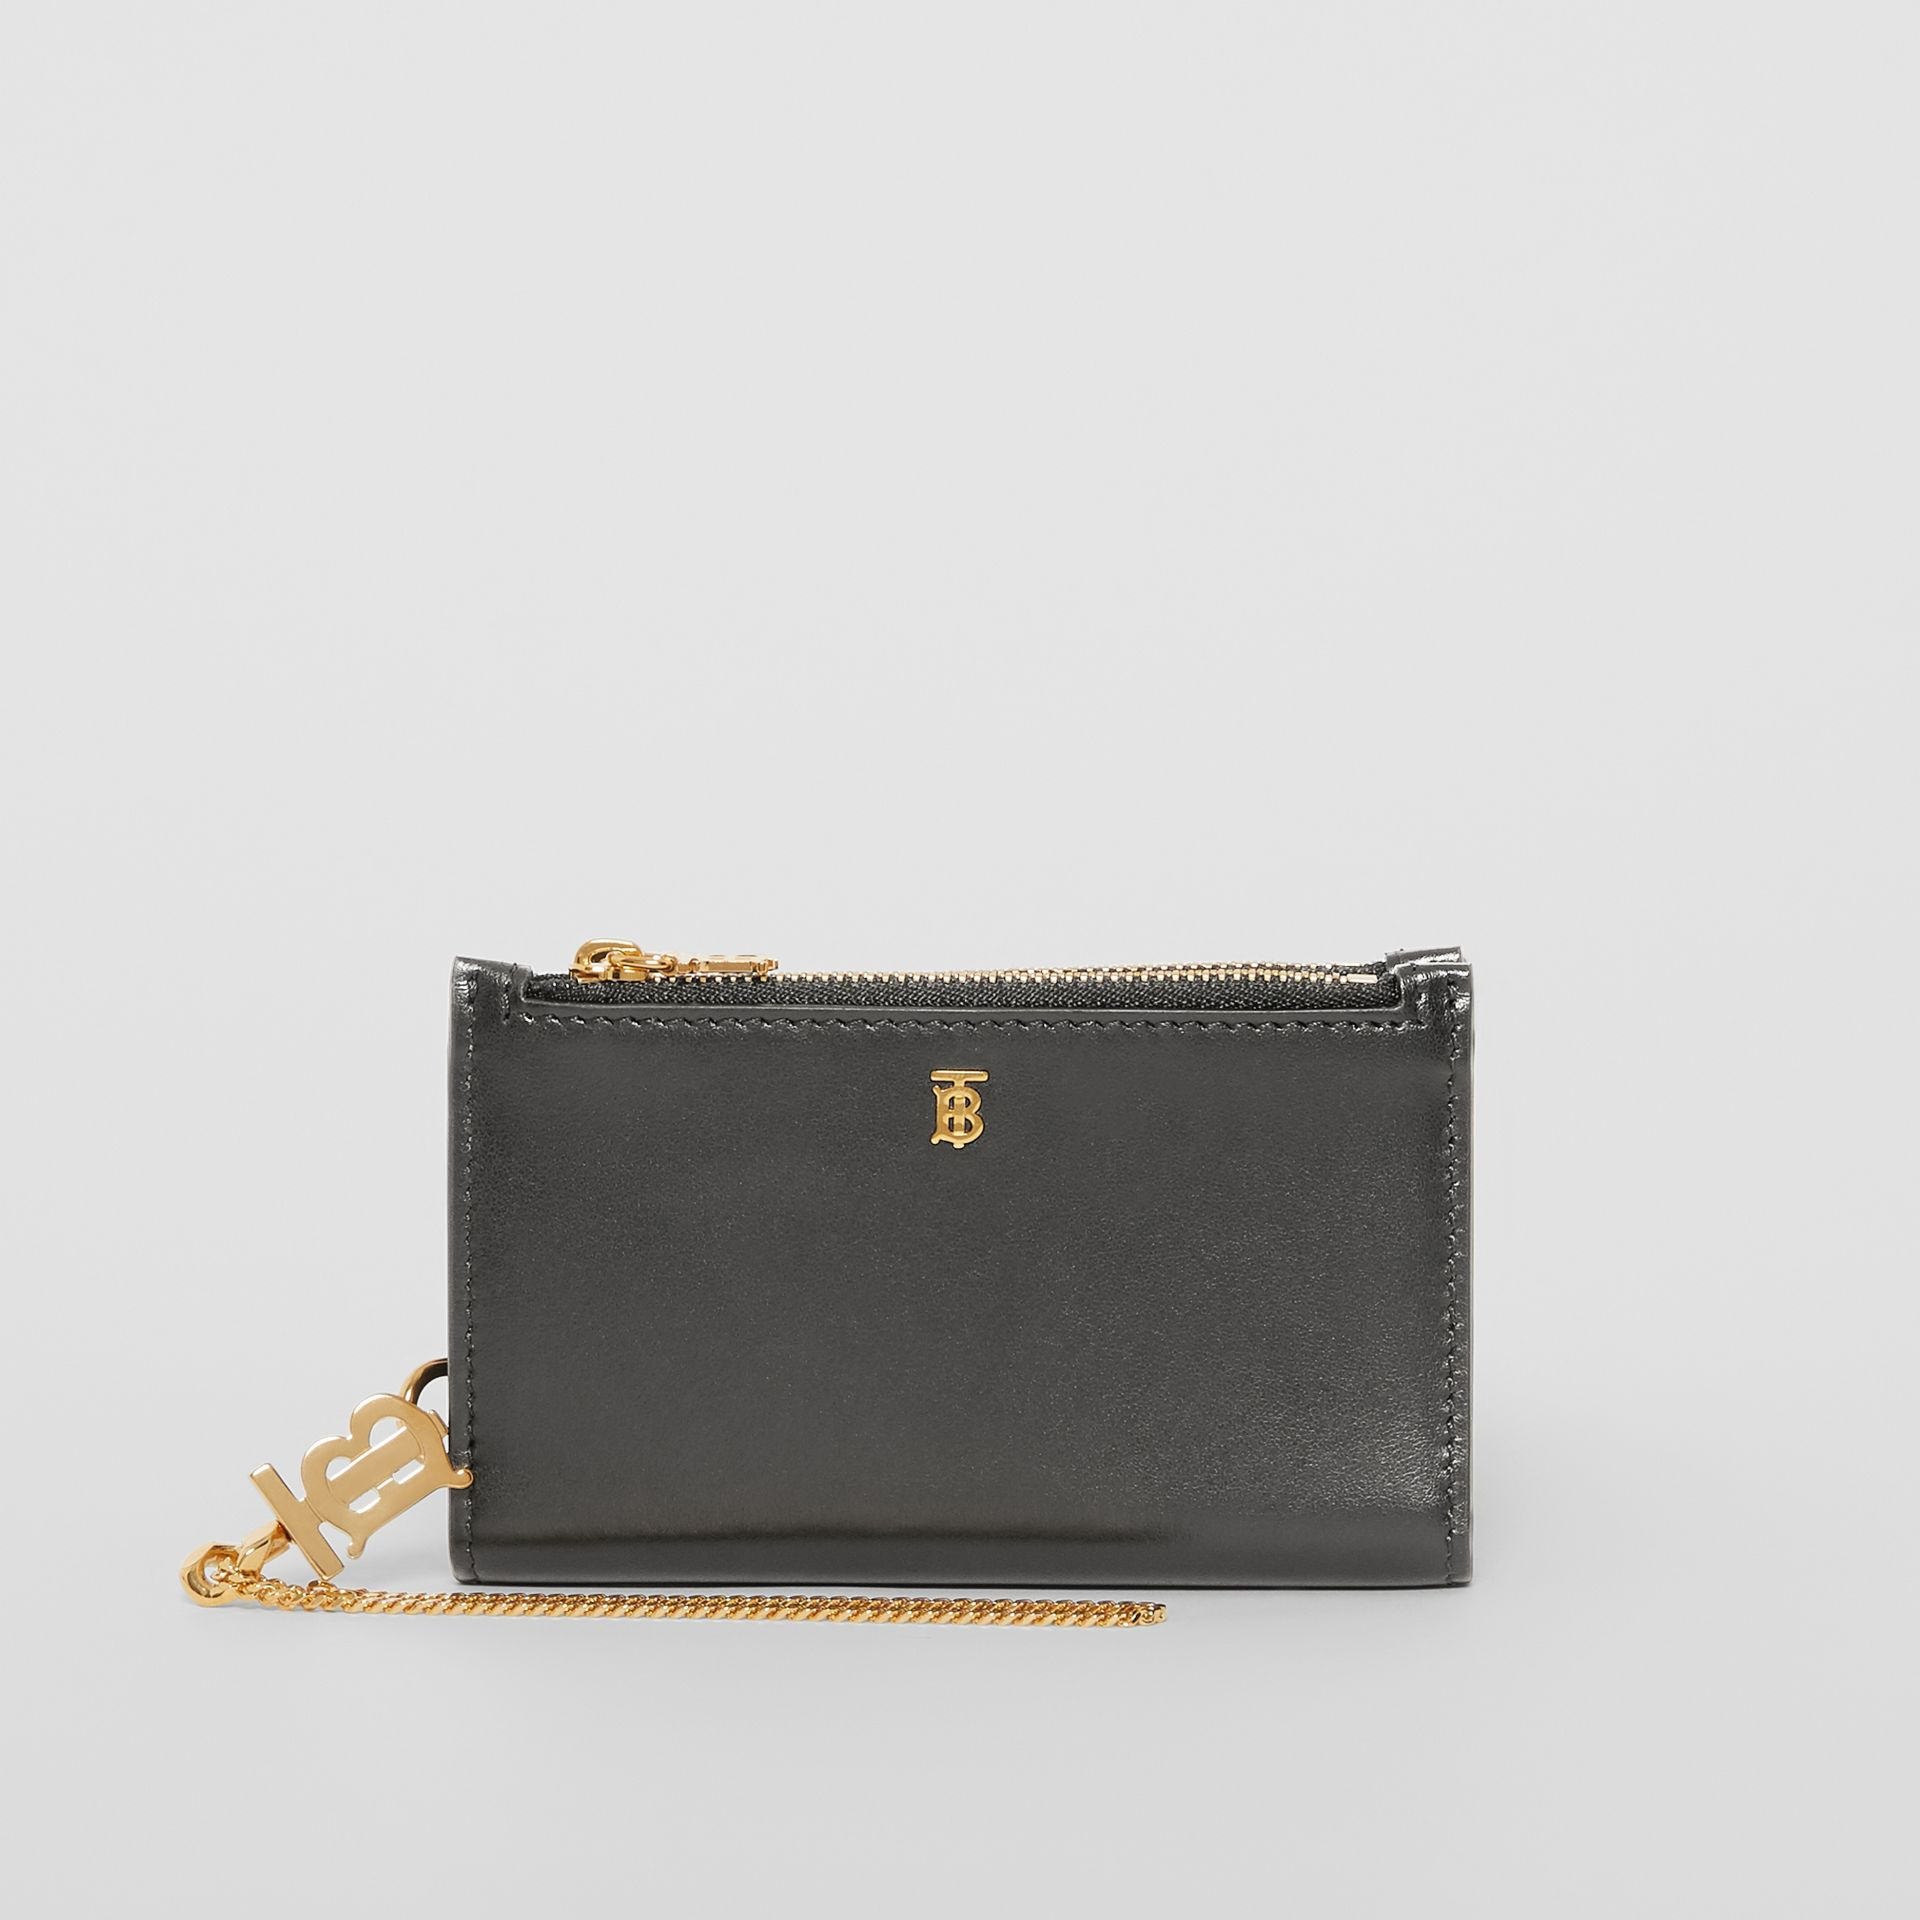 Monogram Motif Leather Wallet with Detachable Strap in Black - Women | Burberry - gallery image 5